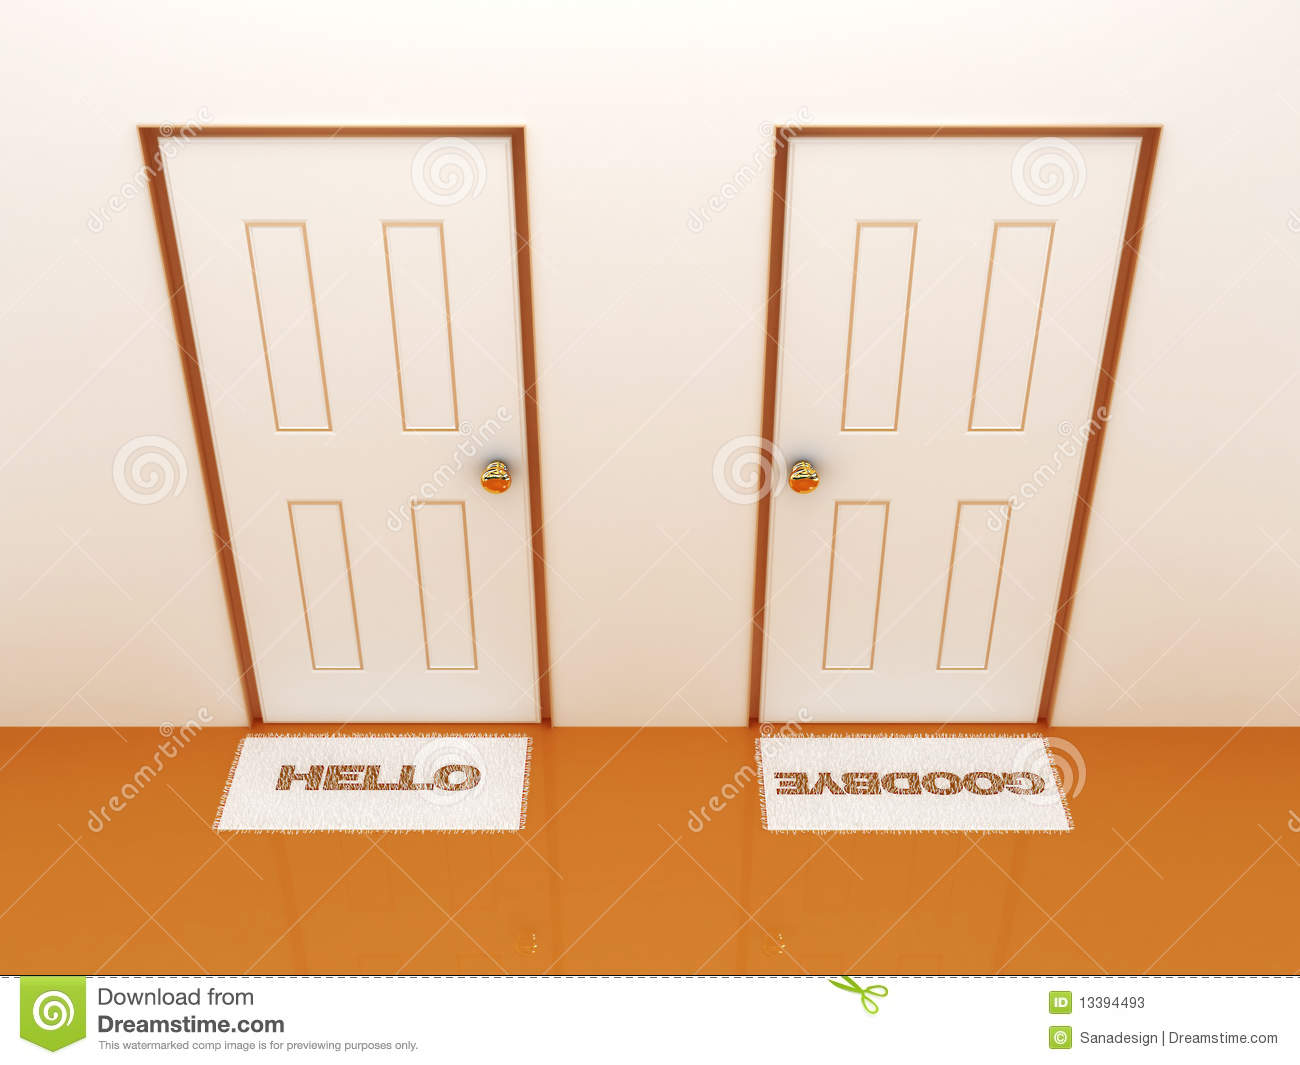 Doors with doormats hello and goodbye  sc 1 st  Dreamstime.com & Doors With Doormats Hello And Goodbye Stock Illustration ...